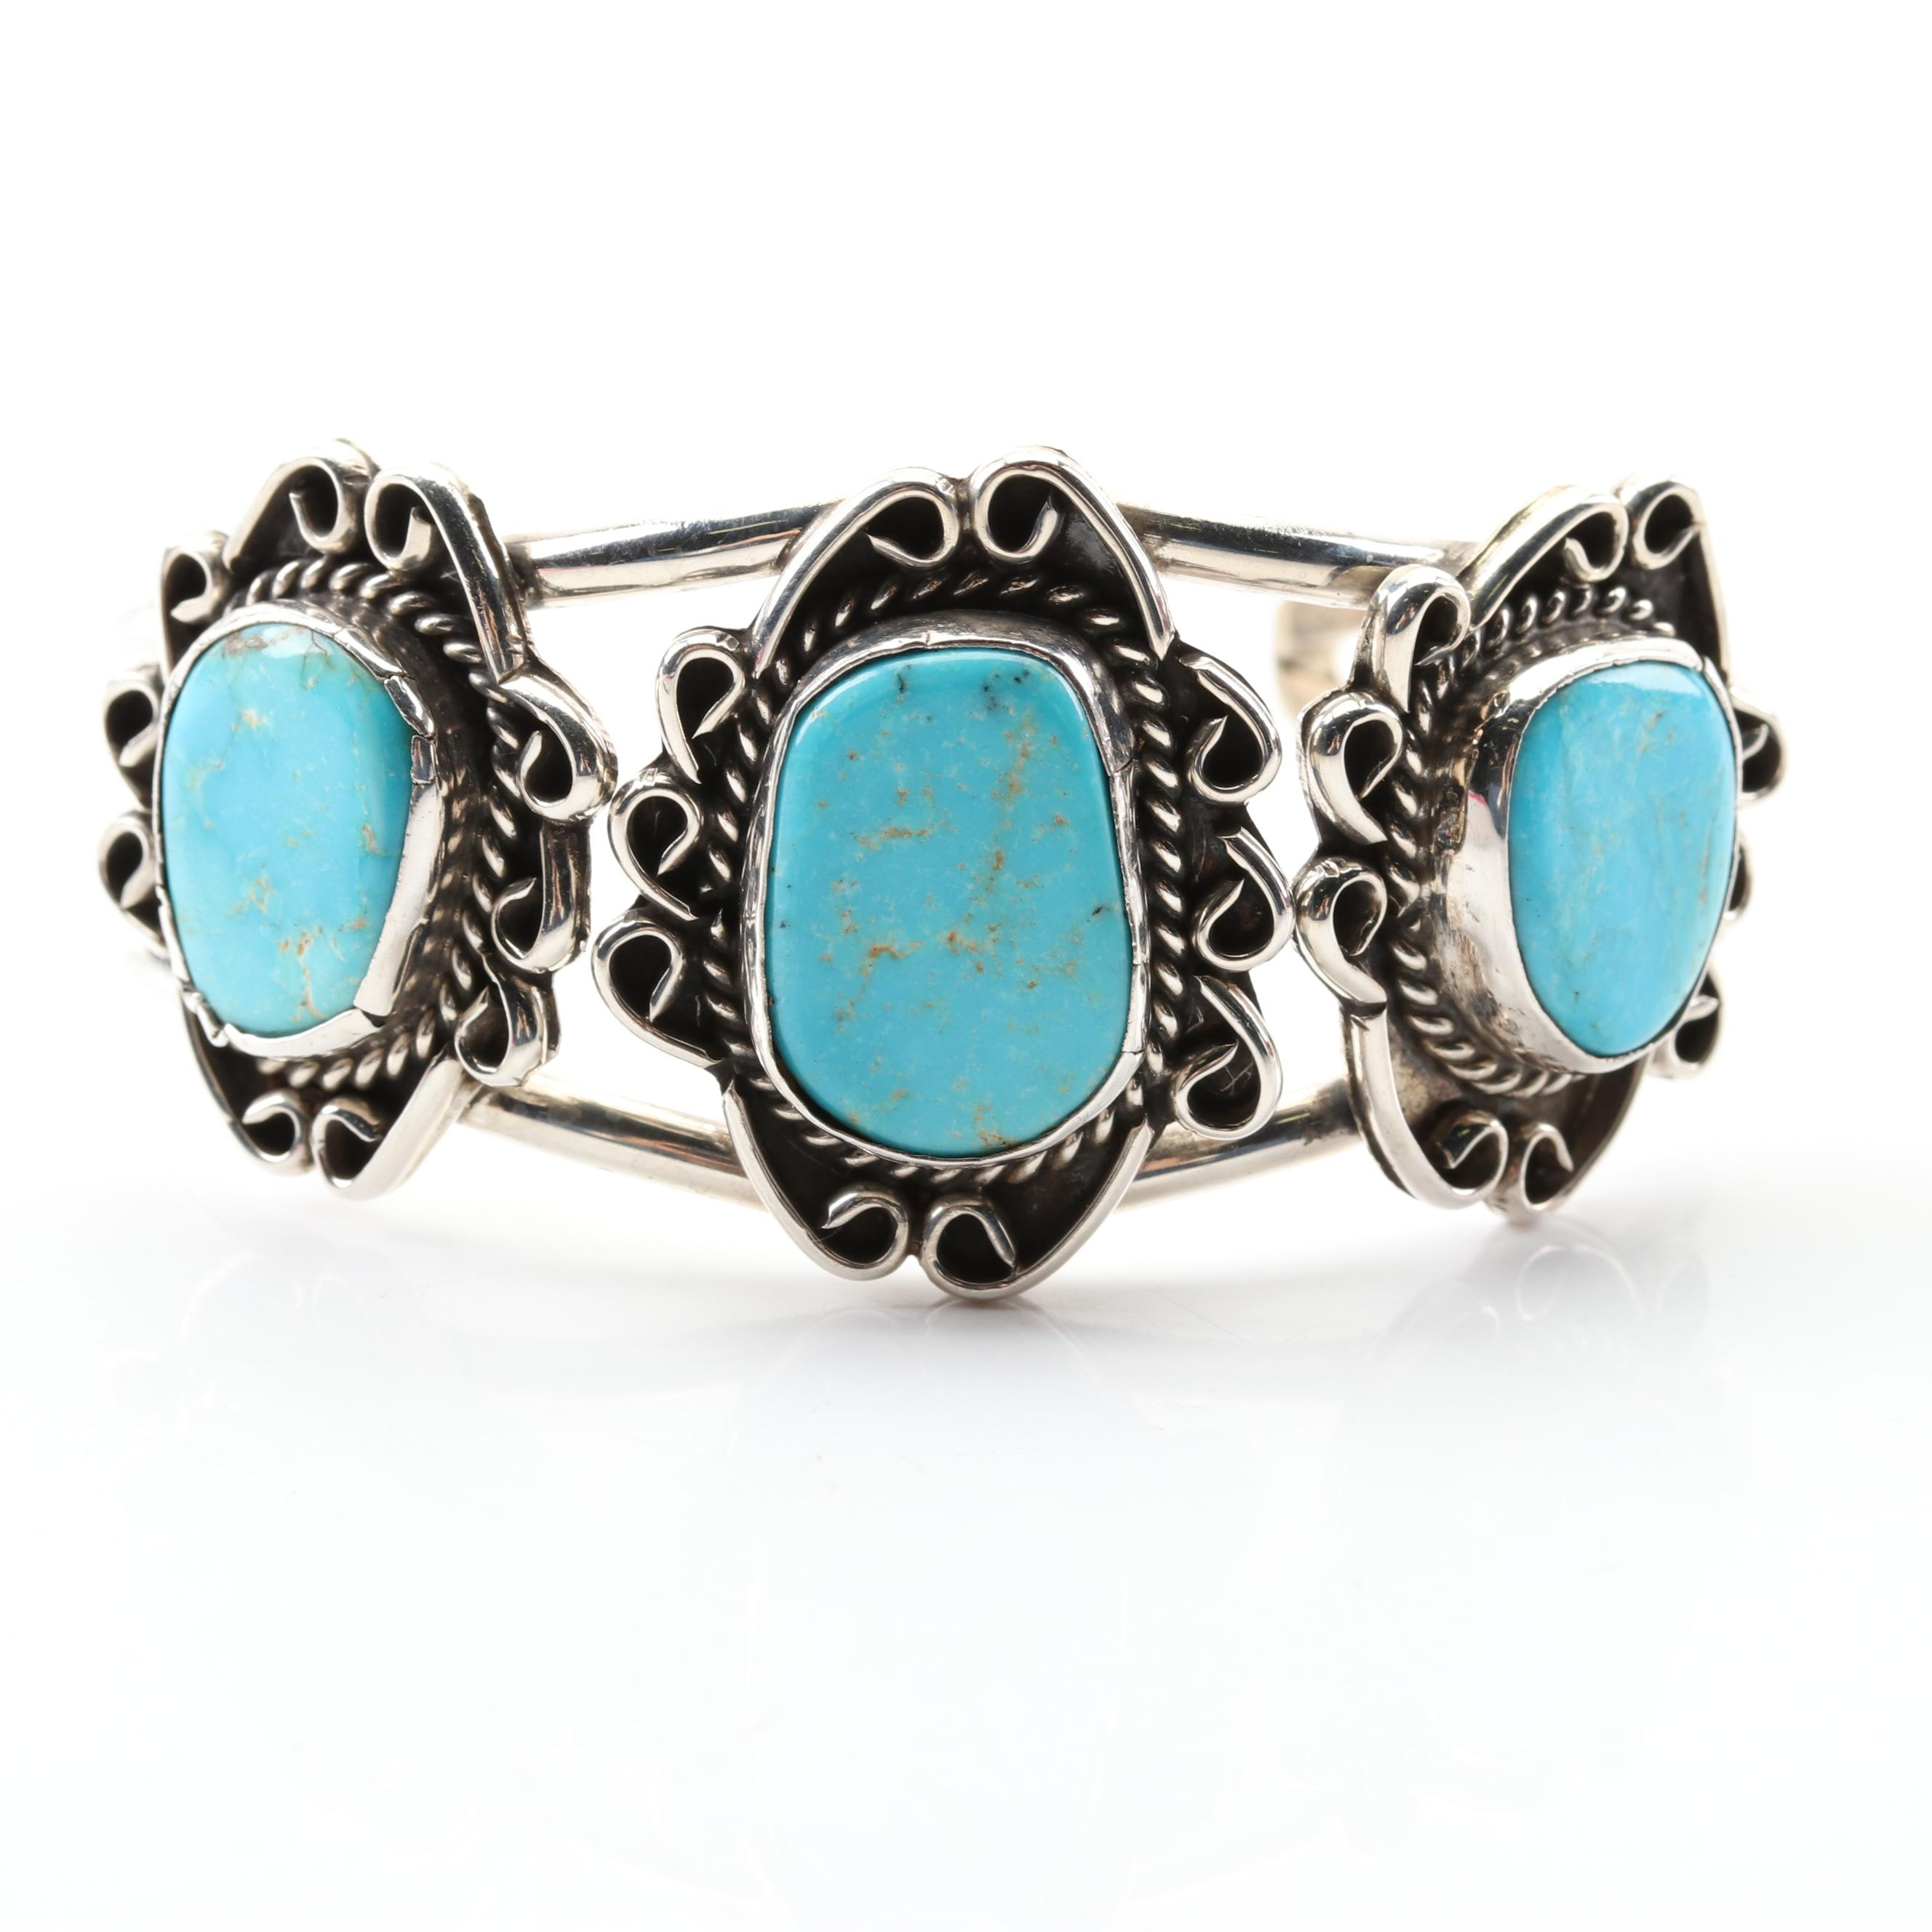 Southwestern Style Sterling Silver Freeform Turquoise Cuff Bracelet